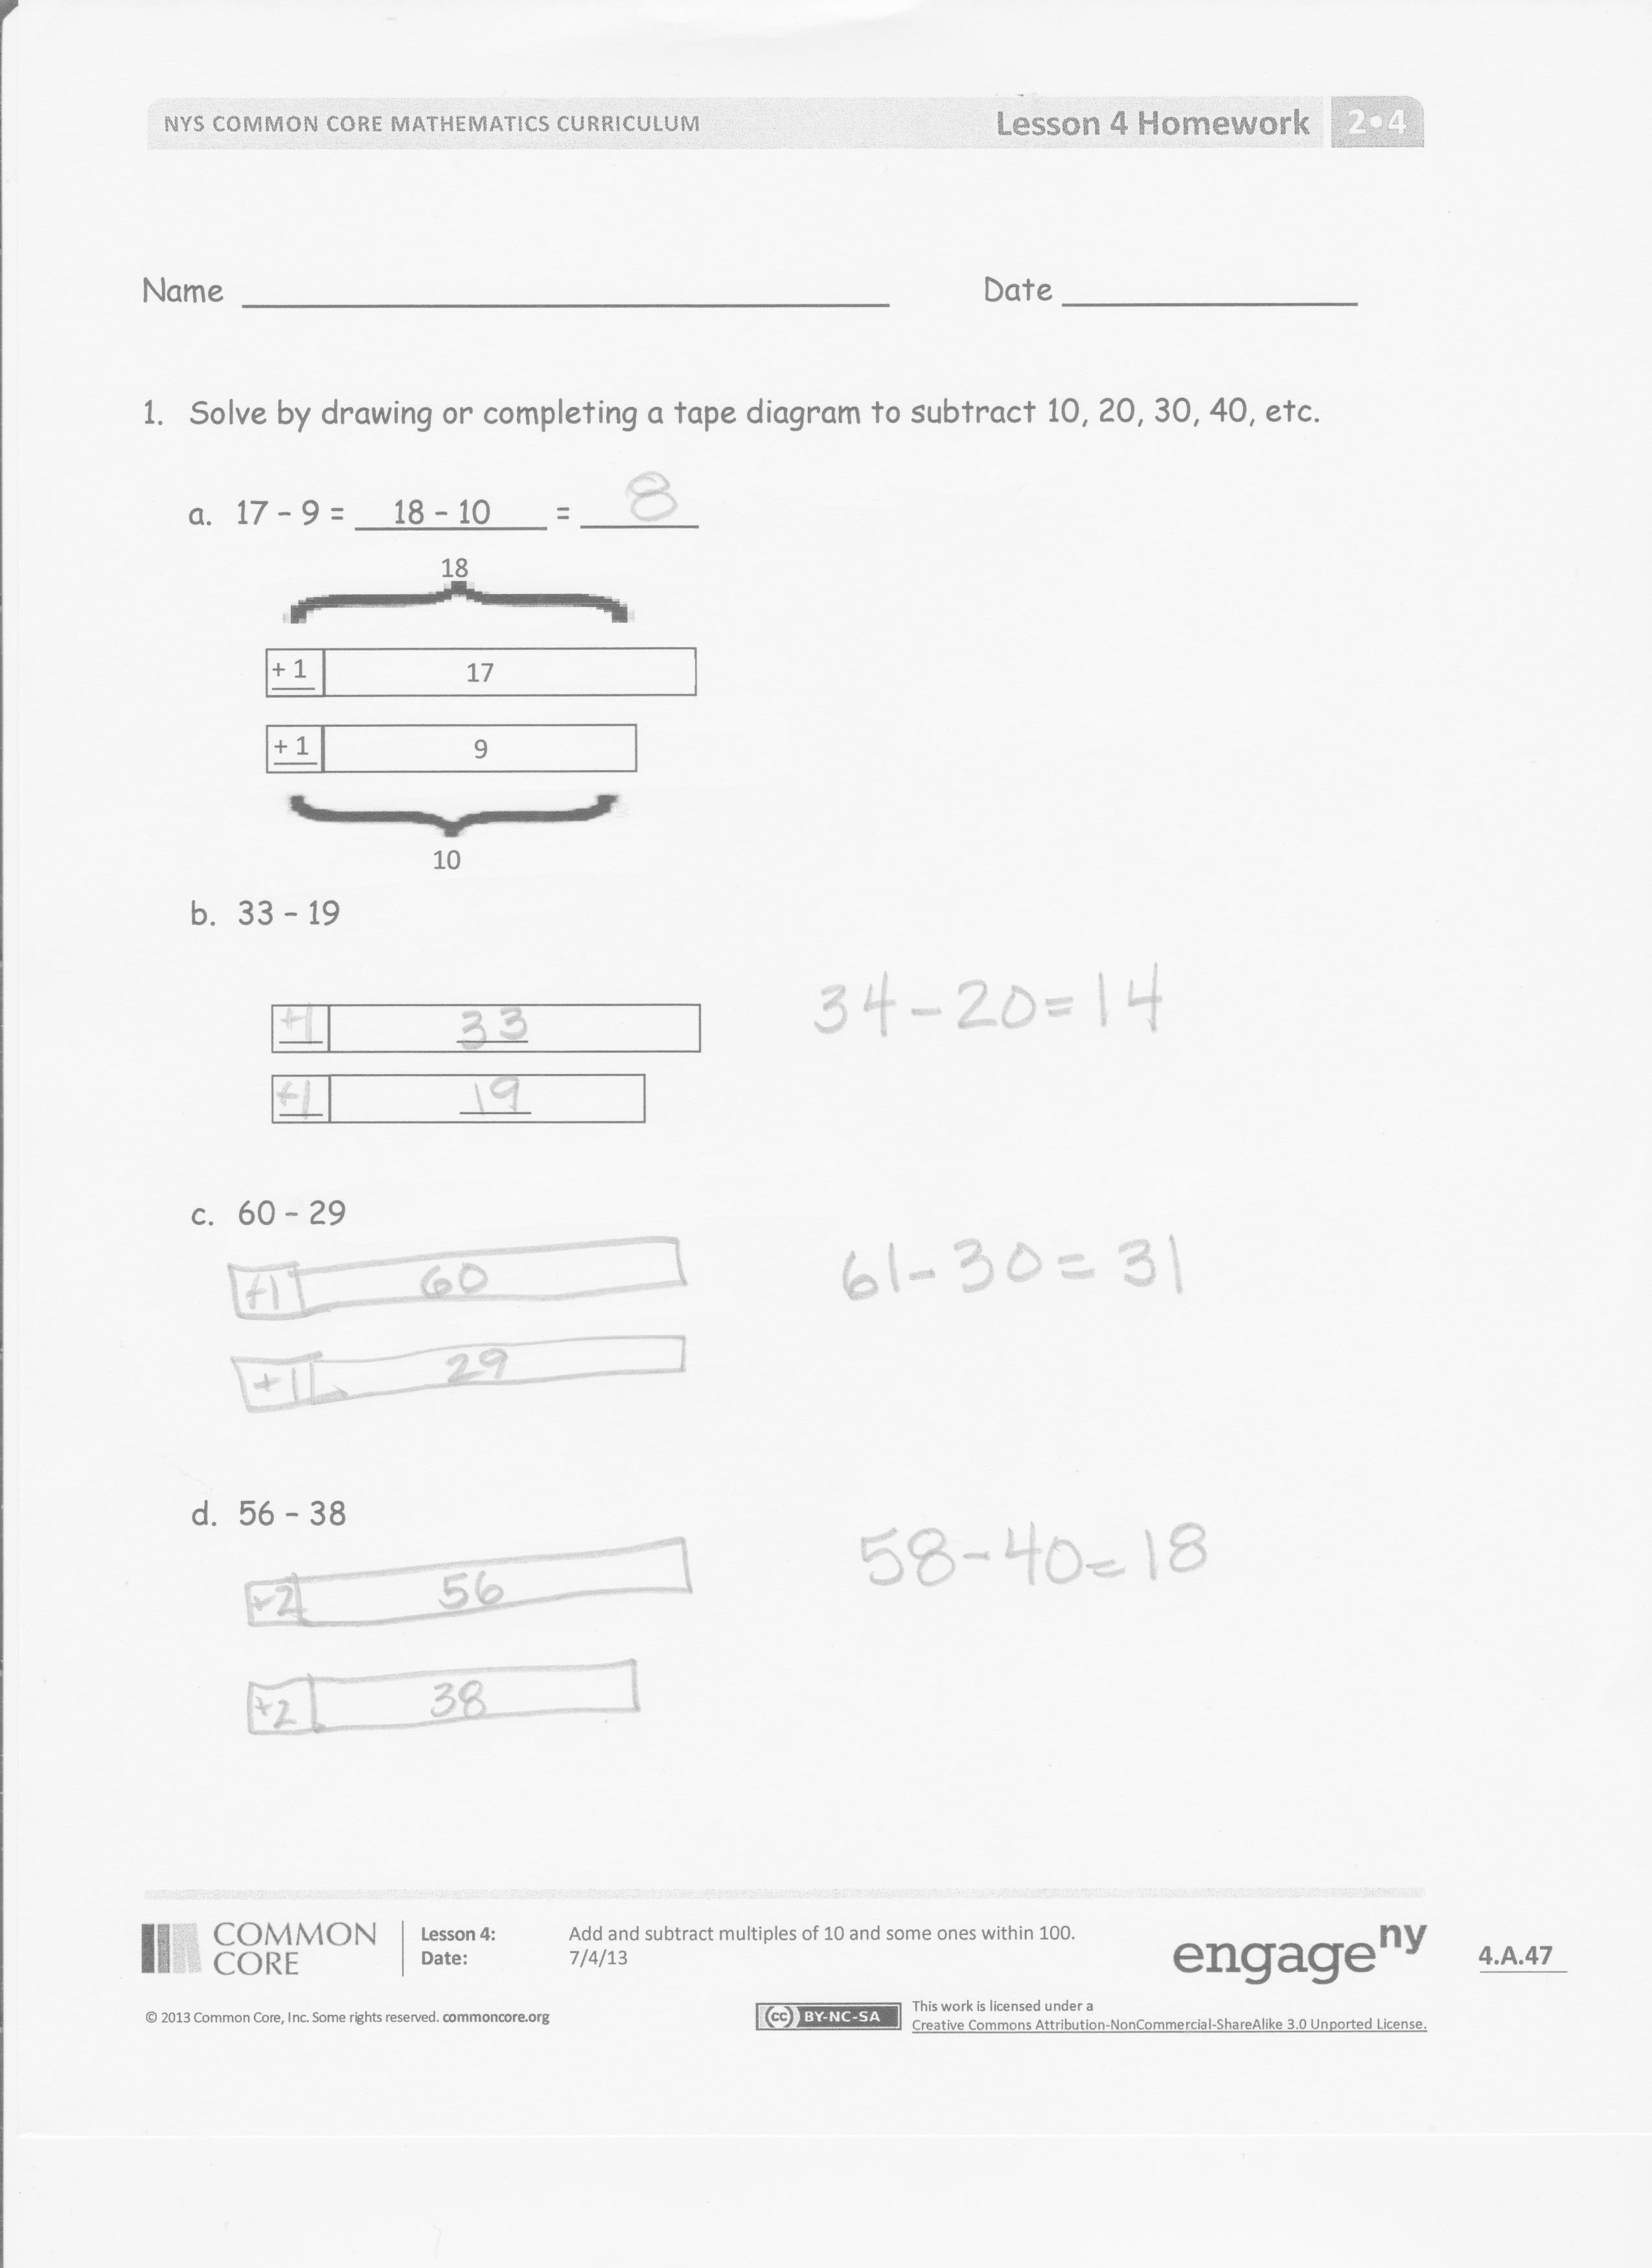 Subtraction tape diagram engageny house wiring diagram symbols unique subtract 10 from 20 ornament math worksheets ideas rh turkishmedals net examples of tape diagrams common core math examples grade 2 ccuart Choice Image